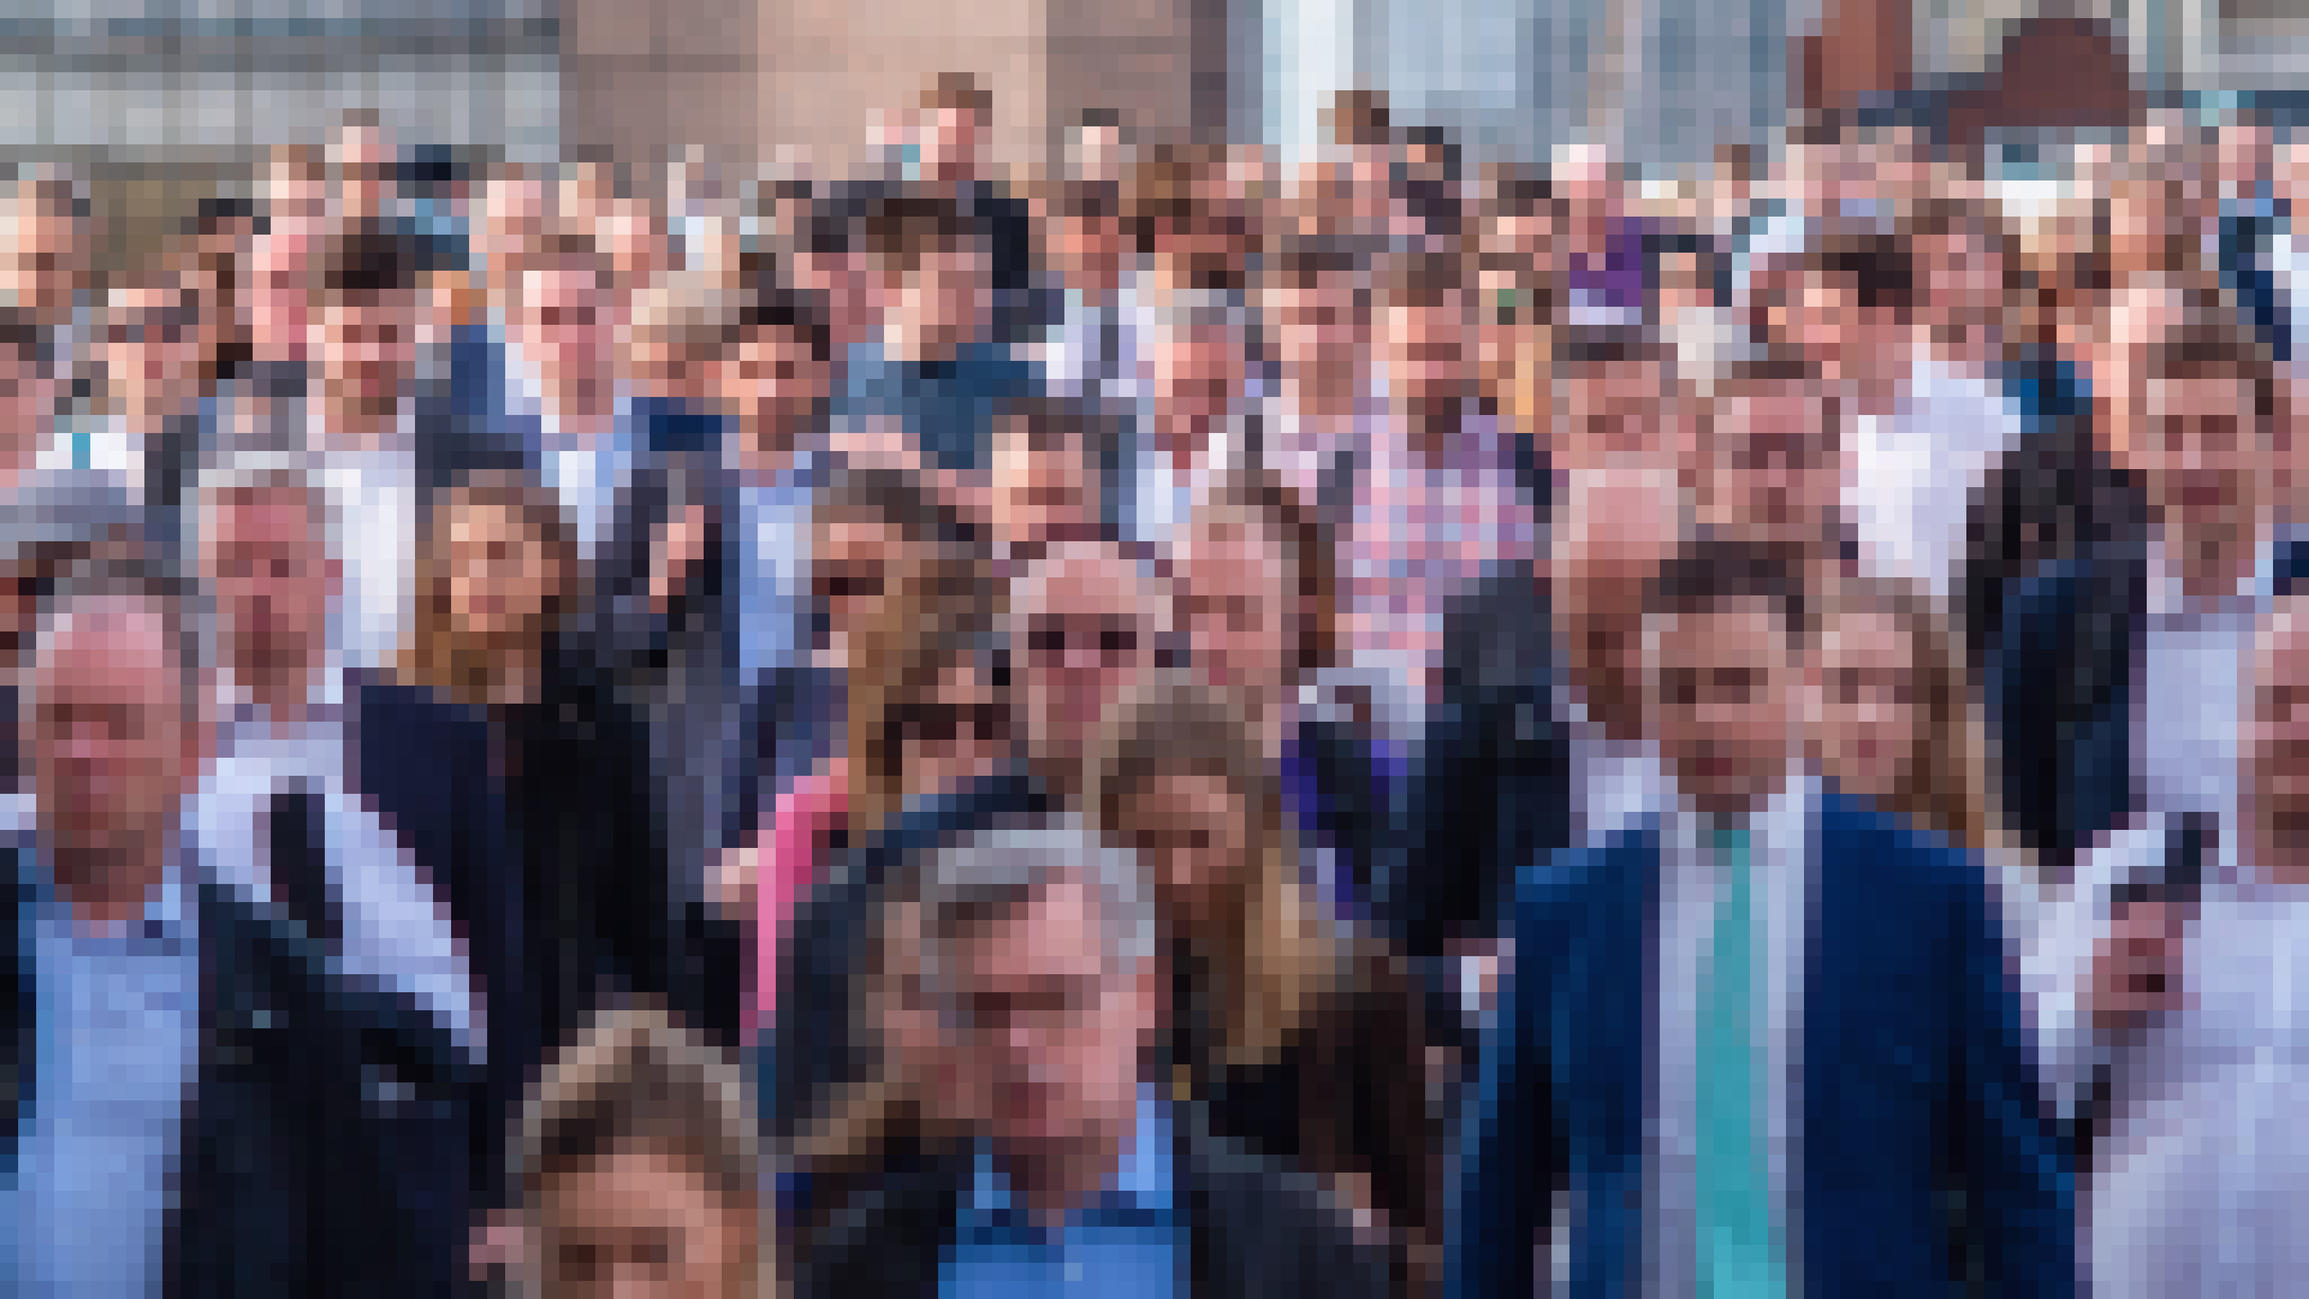 Pixelated image of commuters making their way to work